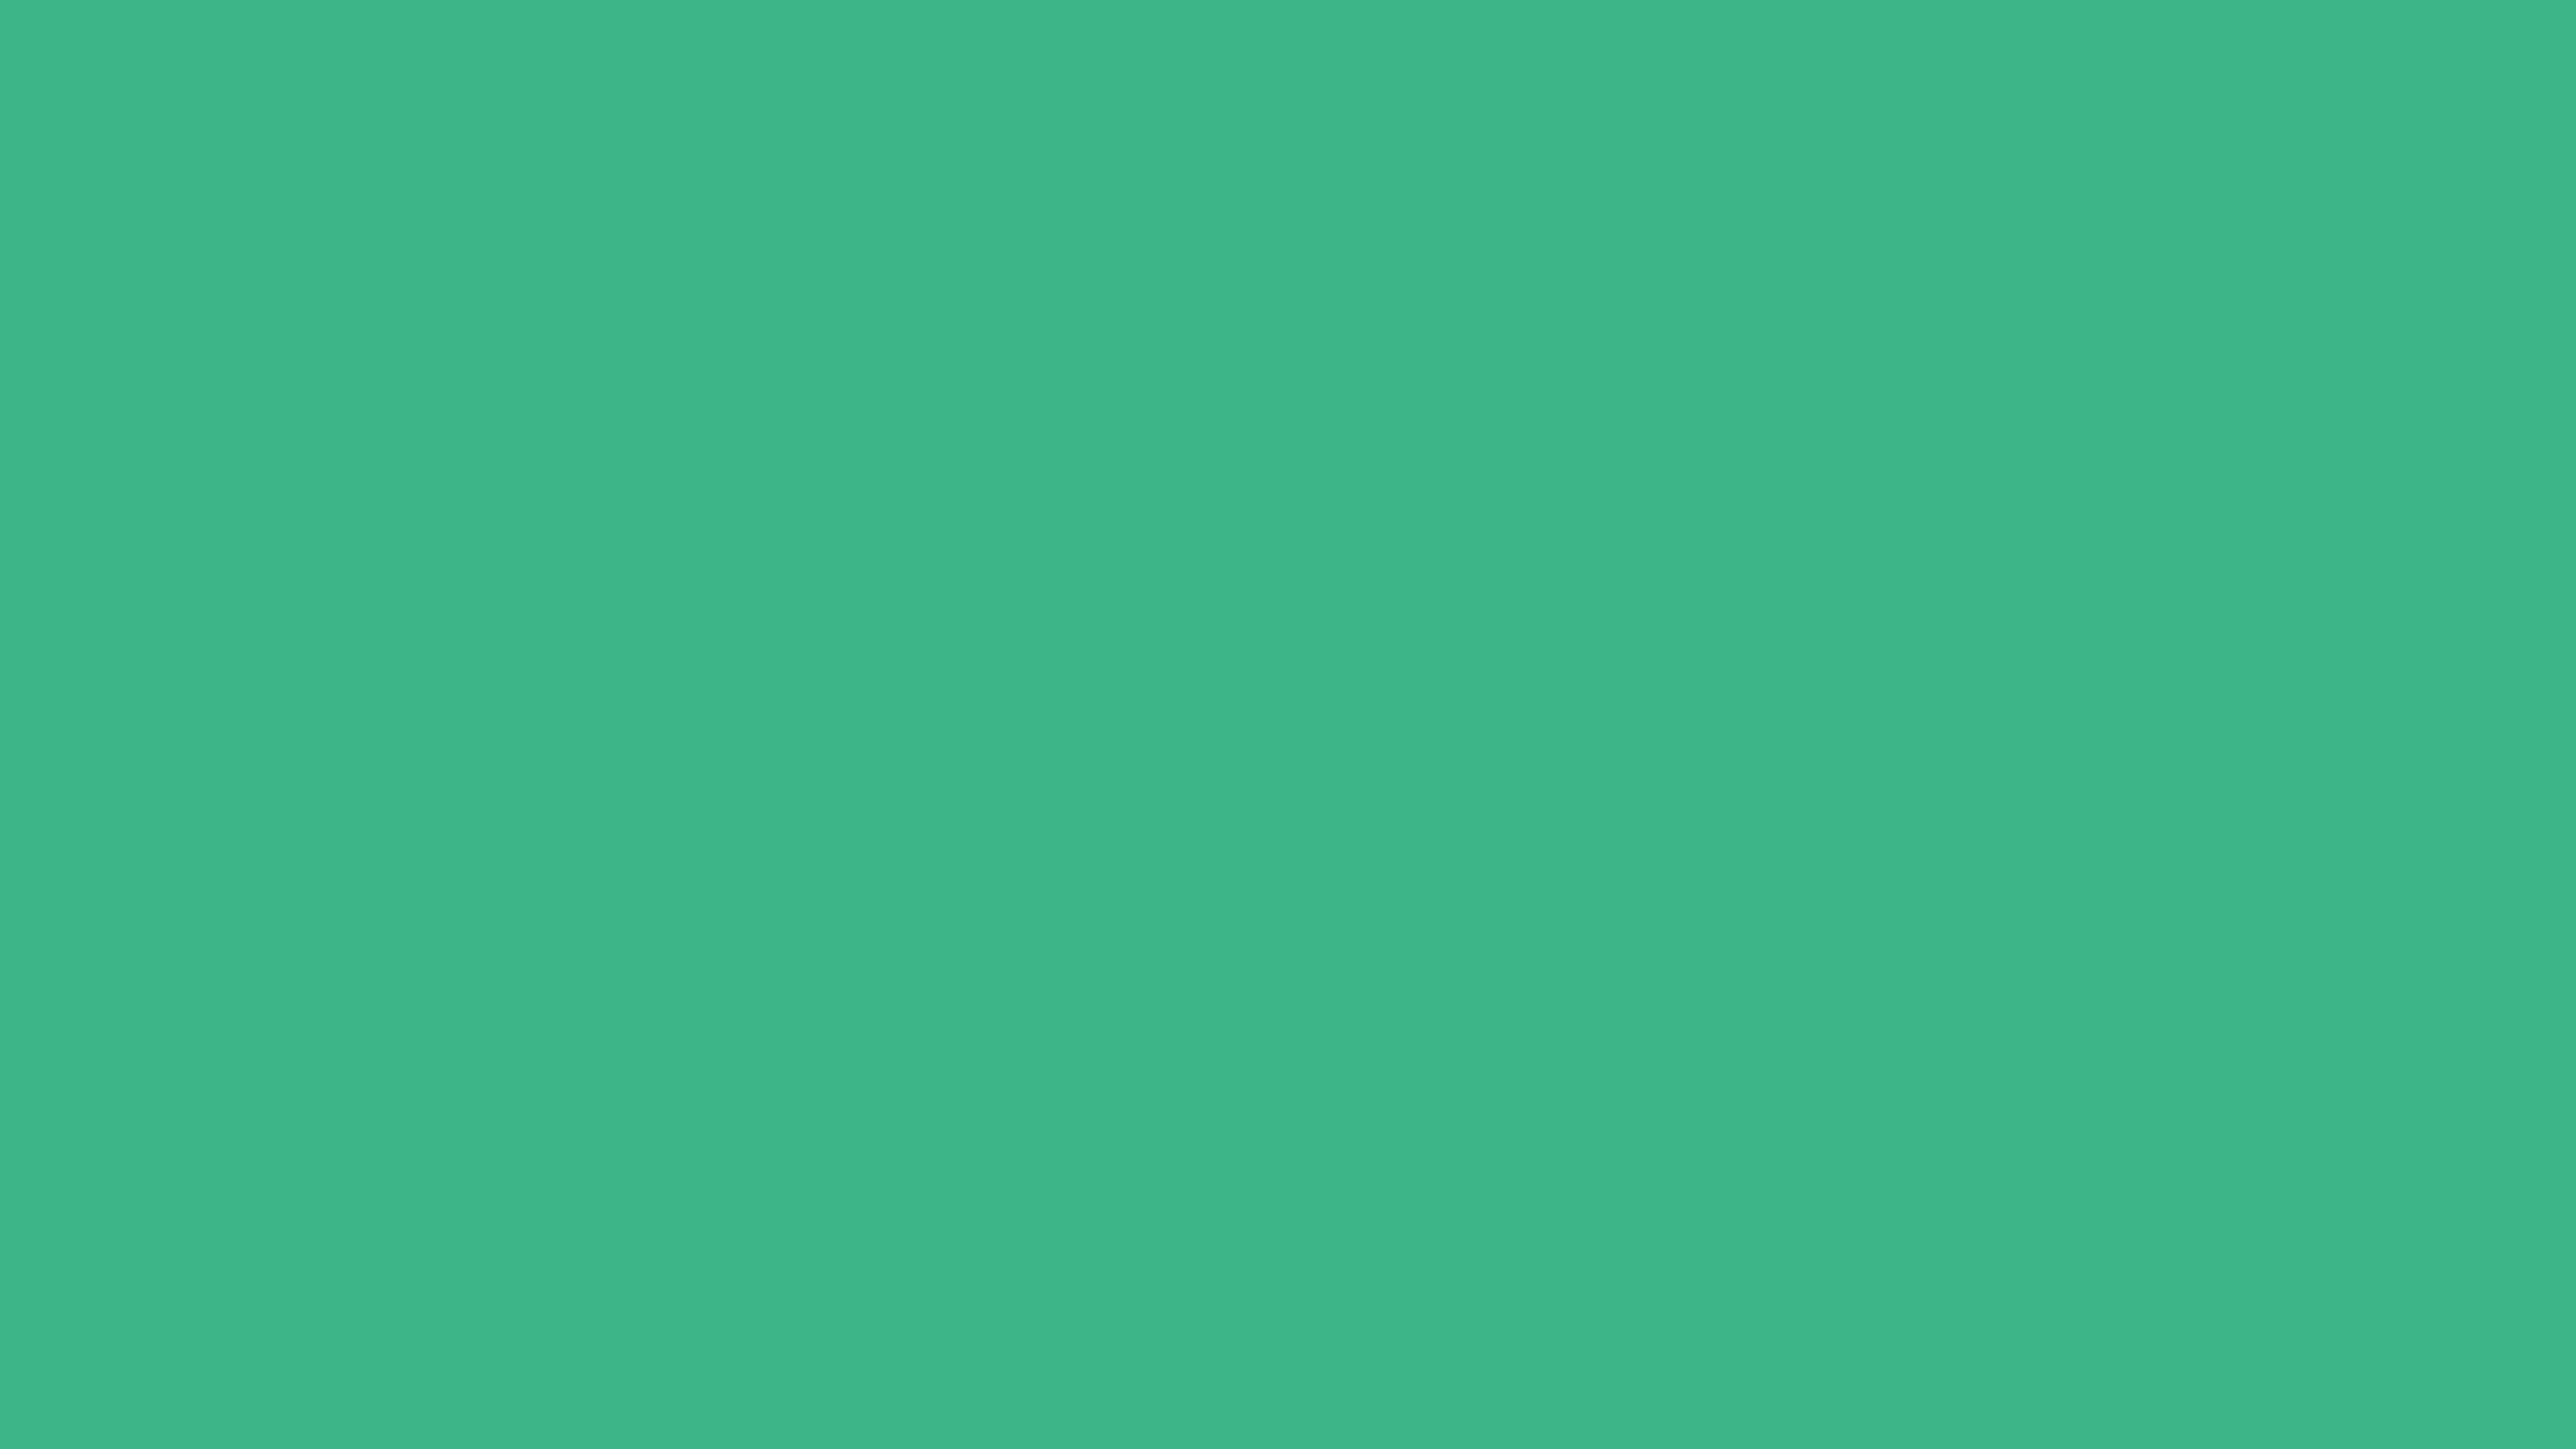 3840x2160 Mint Solid Color Background